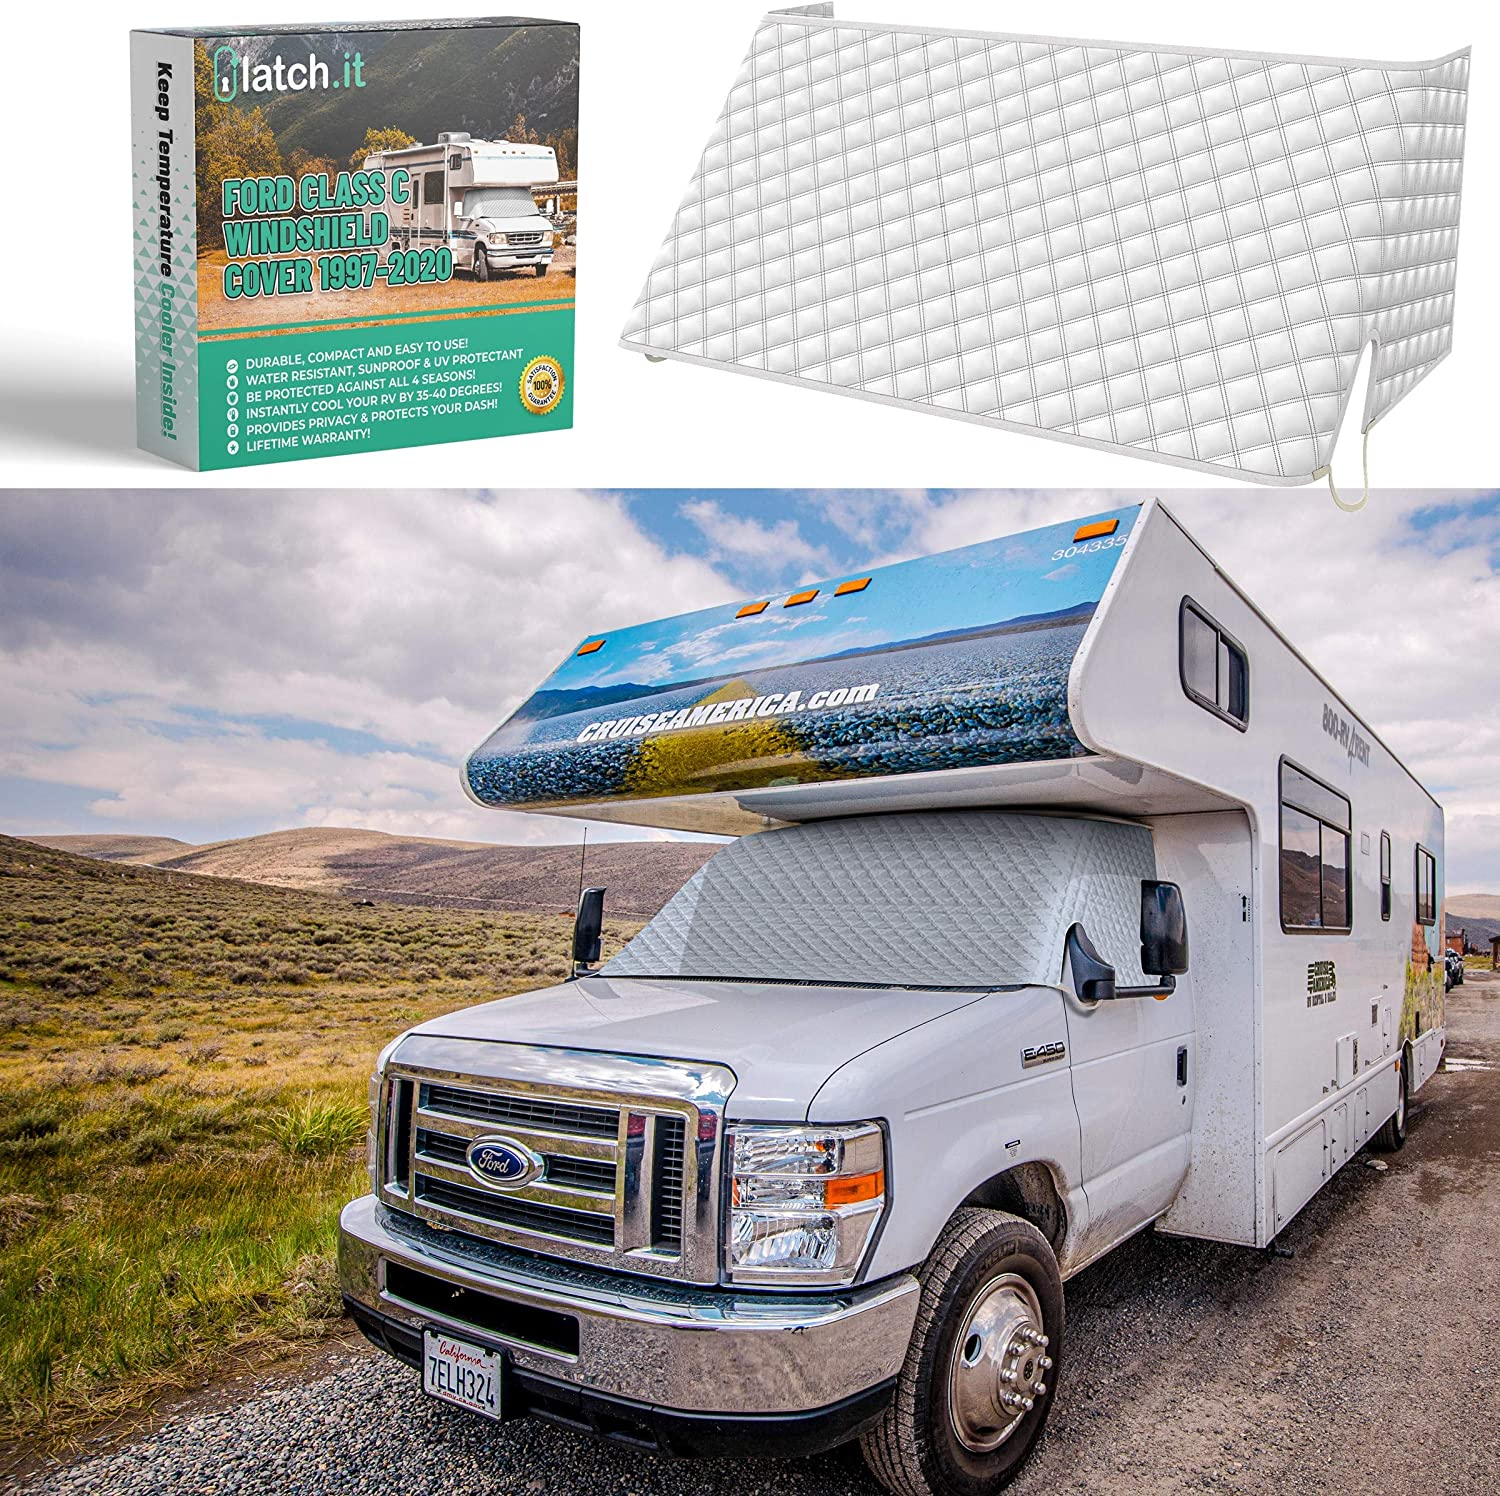 LATCH.IT RV Windshield Cover Class C | RV Front Windshield Cover Class C Compatible with Ford 1997-2020 | Class C Motorhome Windshield Cover w/Upgrade Mirror Cutouts and Elastic Corner Bands